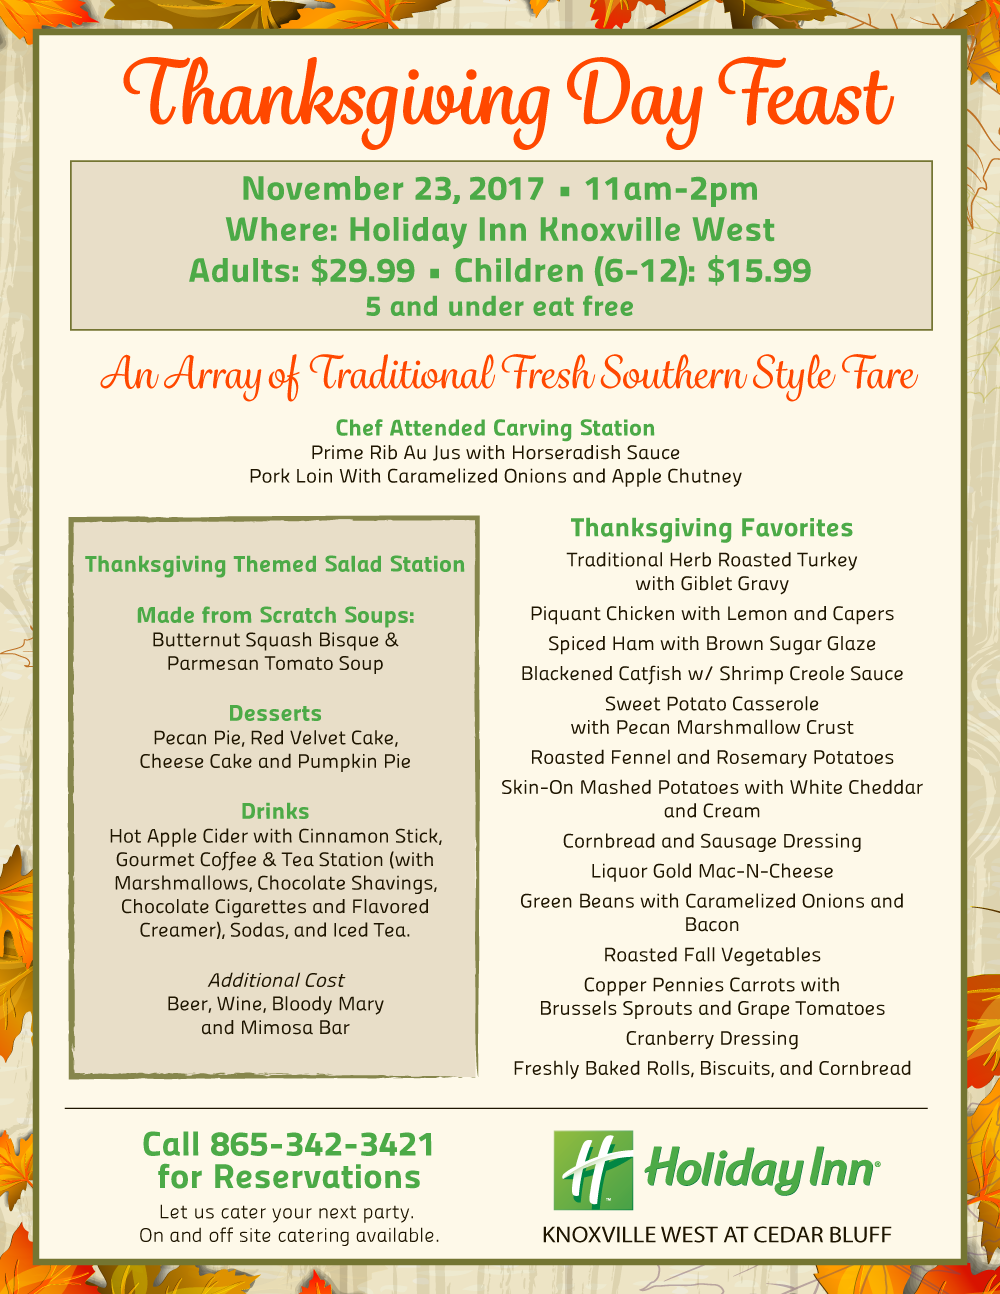 Thanksgiving Feast at the Holiday Inn Knoxville West at Cedar Bluff